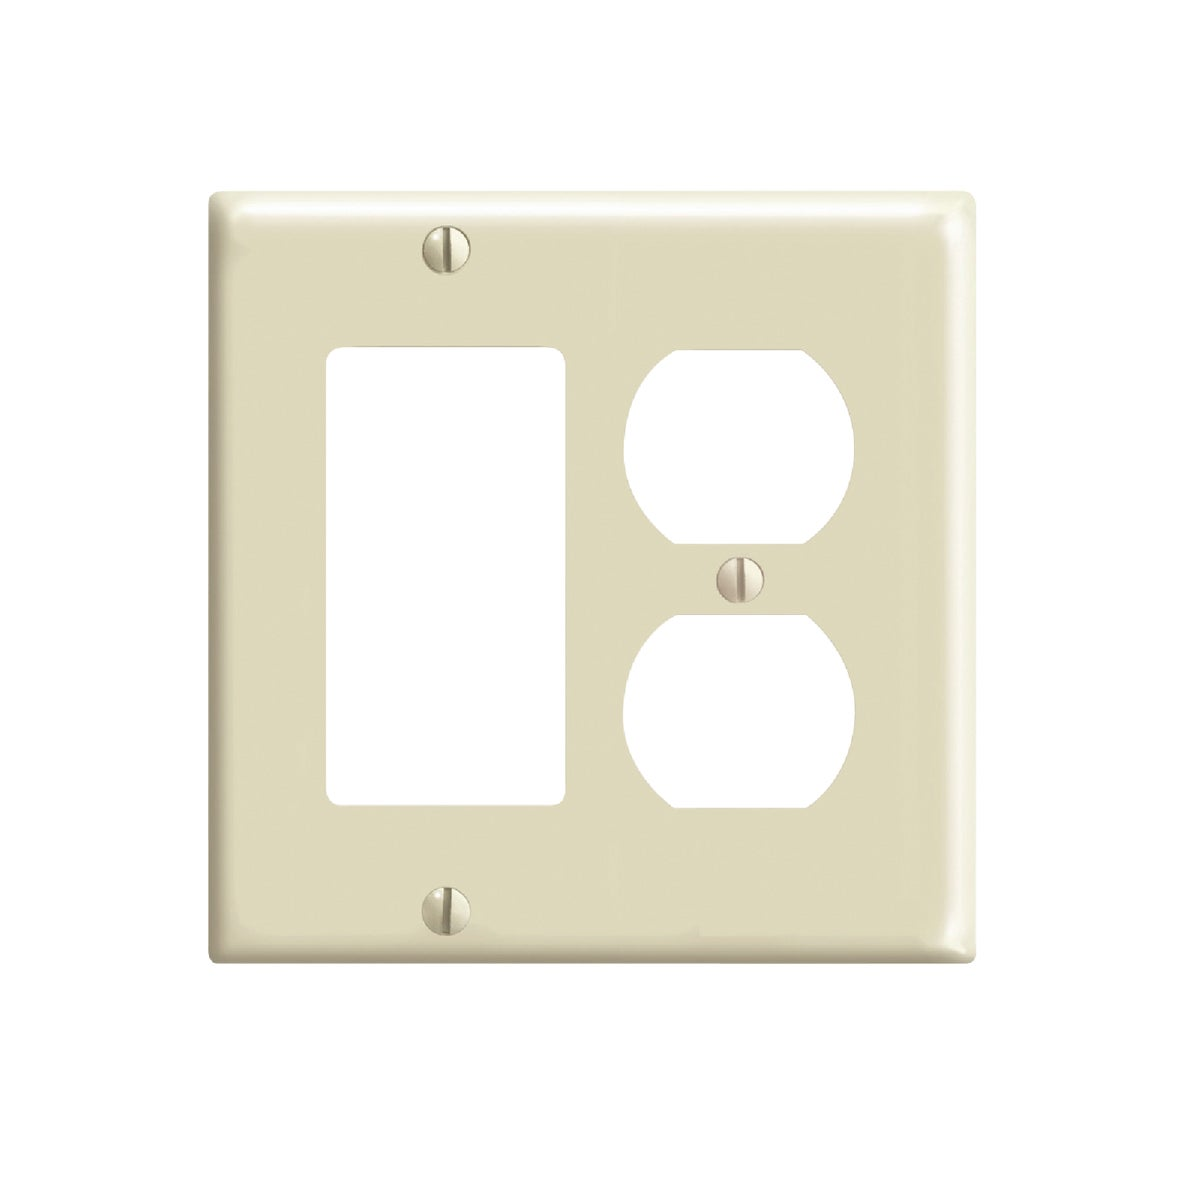 IV COMBO WALL PLATE - 80455I by Leviton Mfg Co